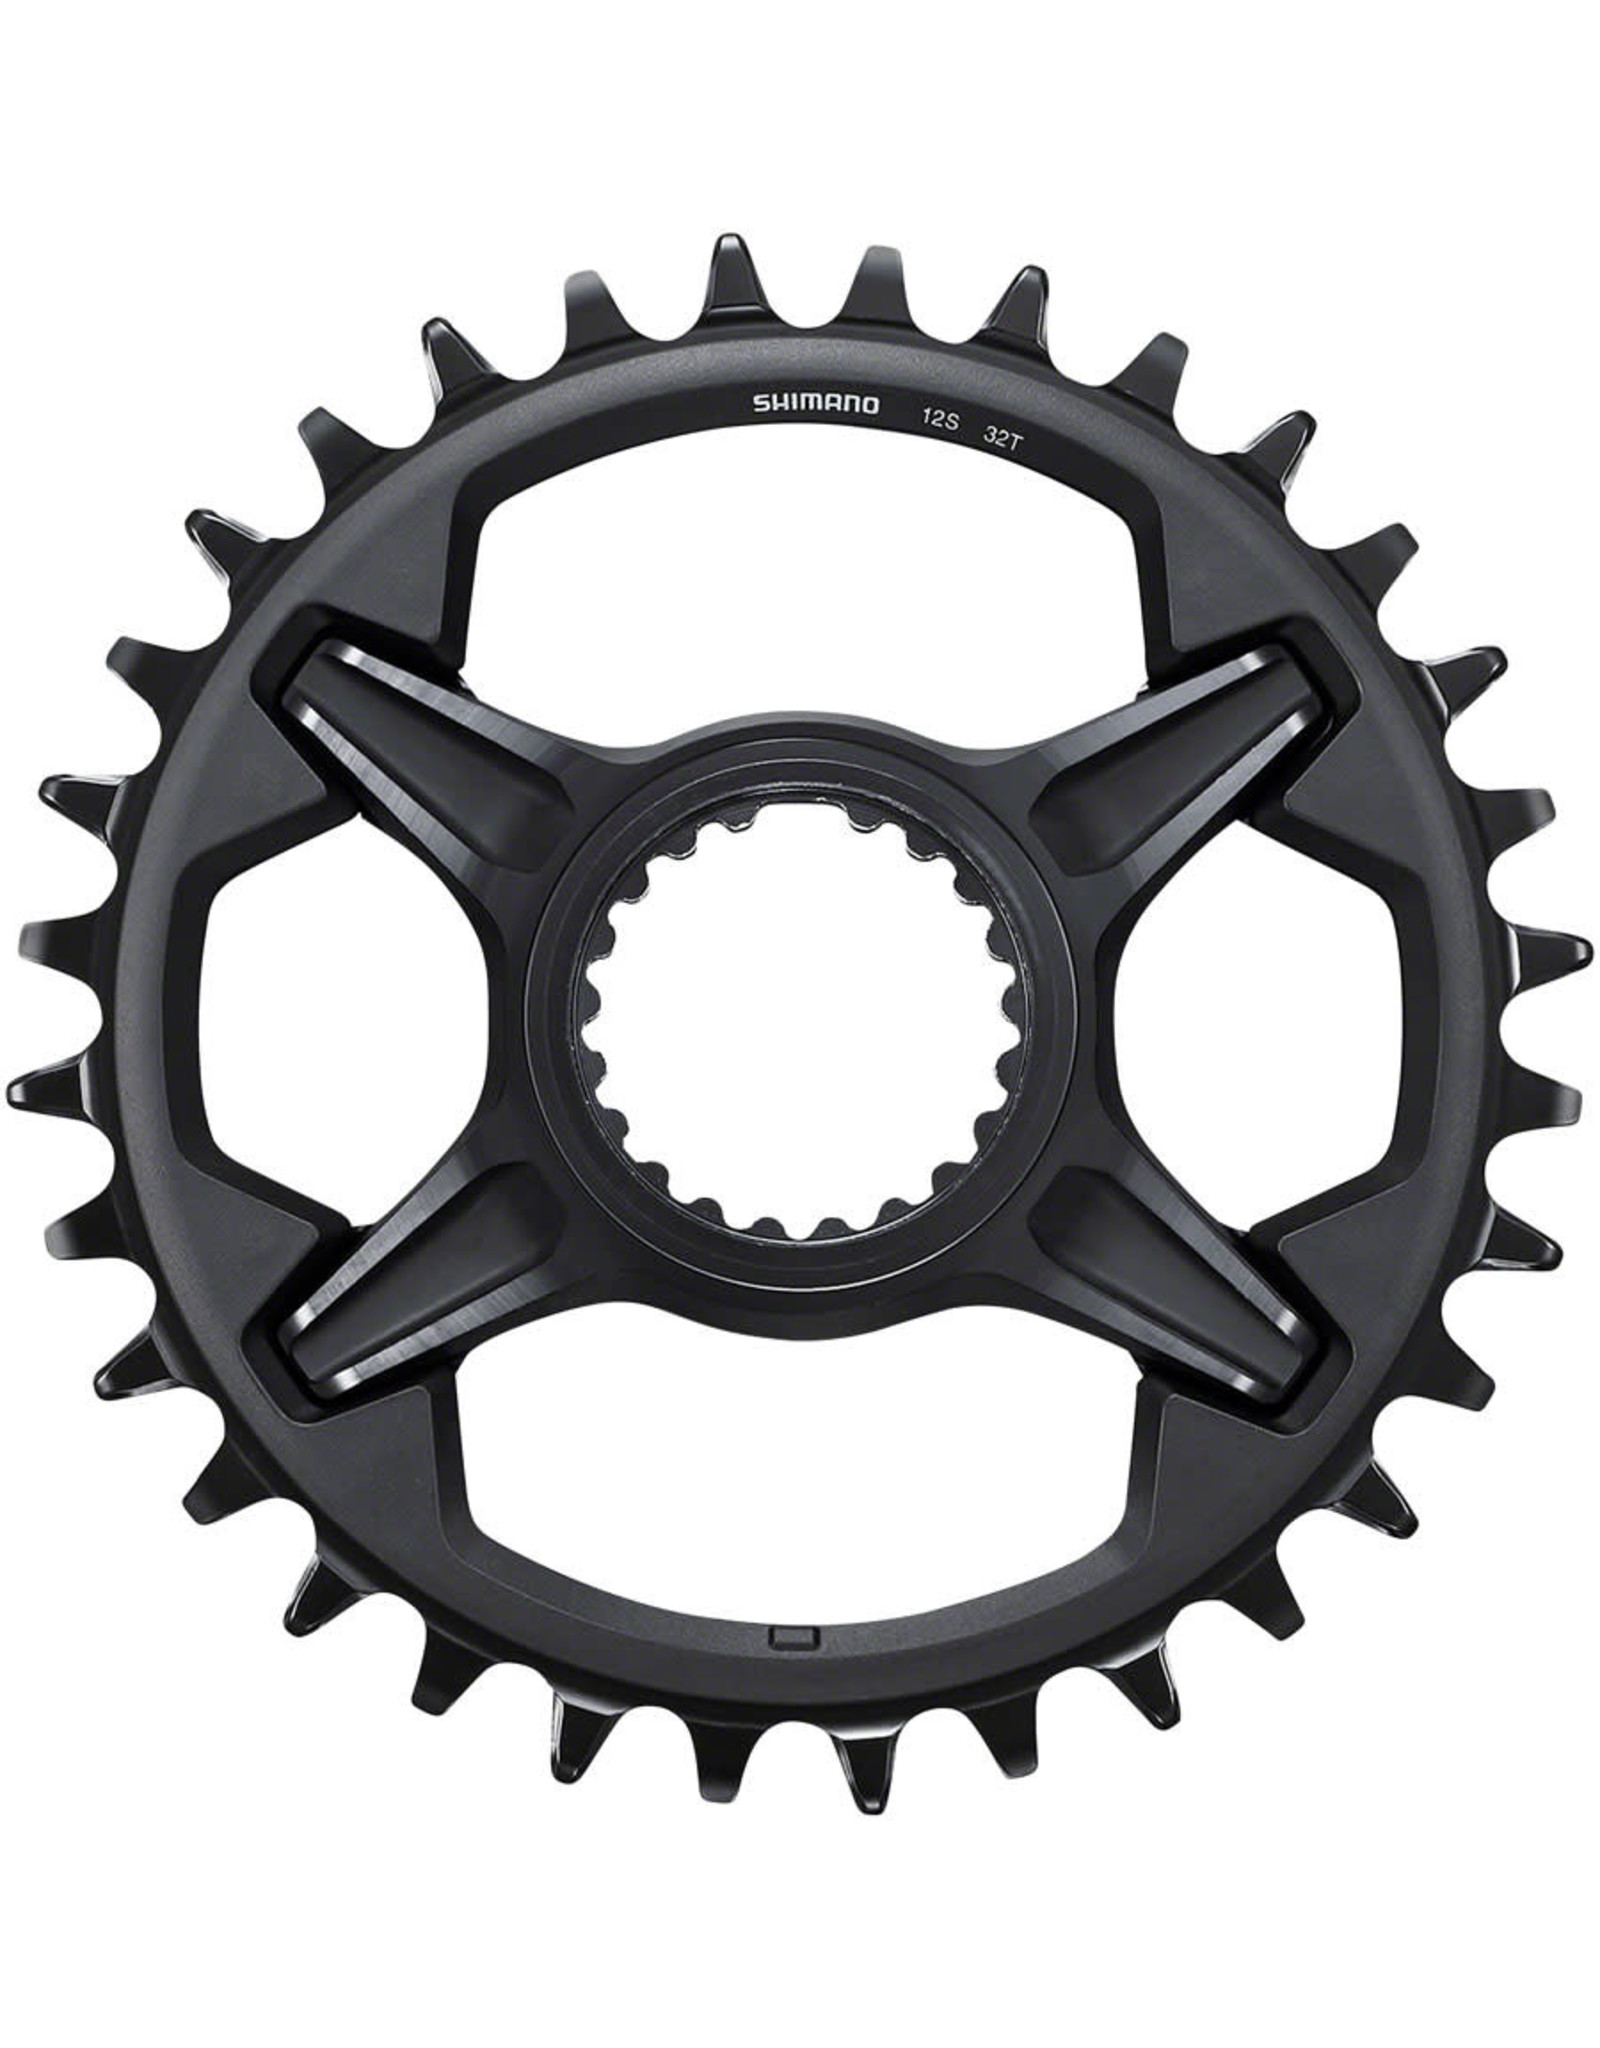 Shimano Shimano XT SM-CRM85 32t 1x Chainring for M8100 and M8130 Cranks, Black